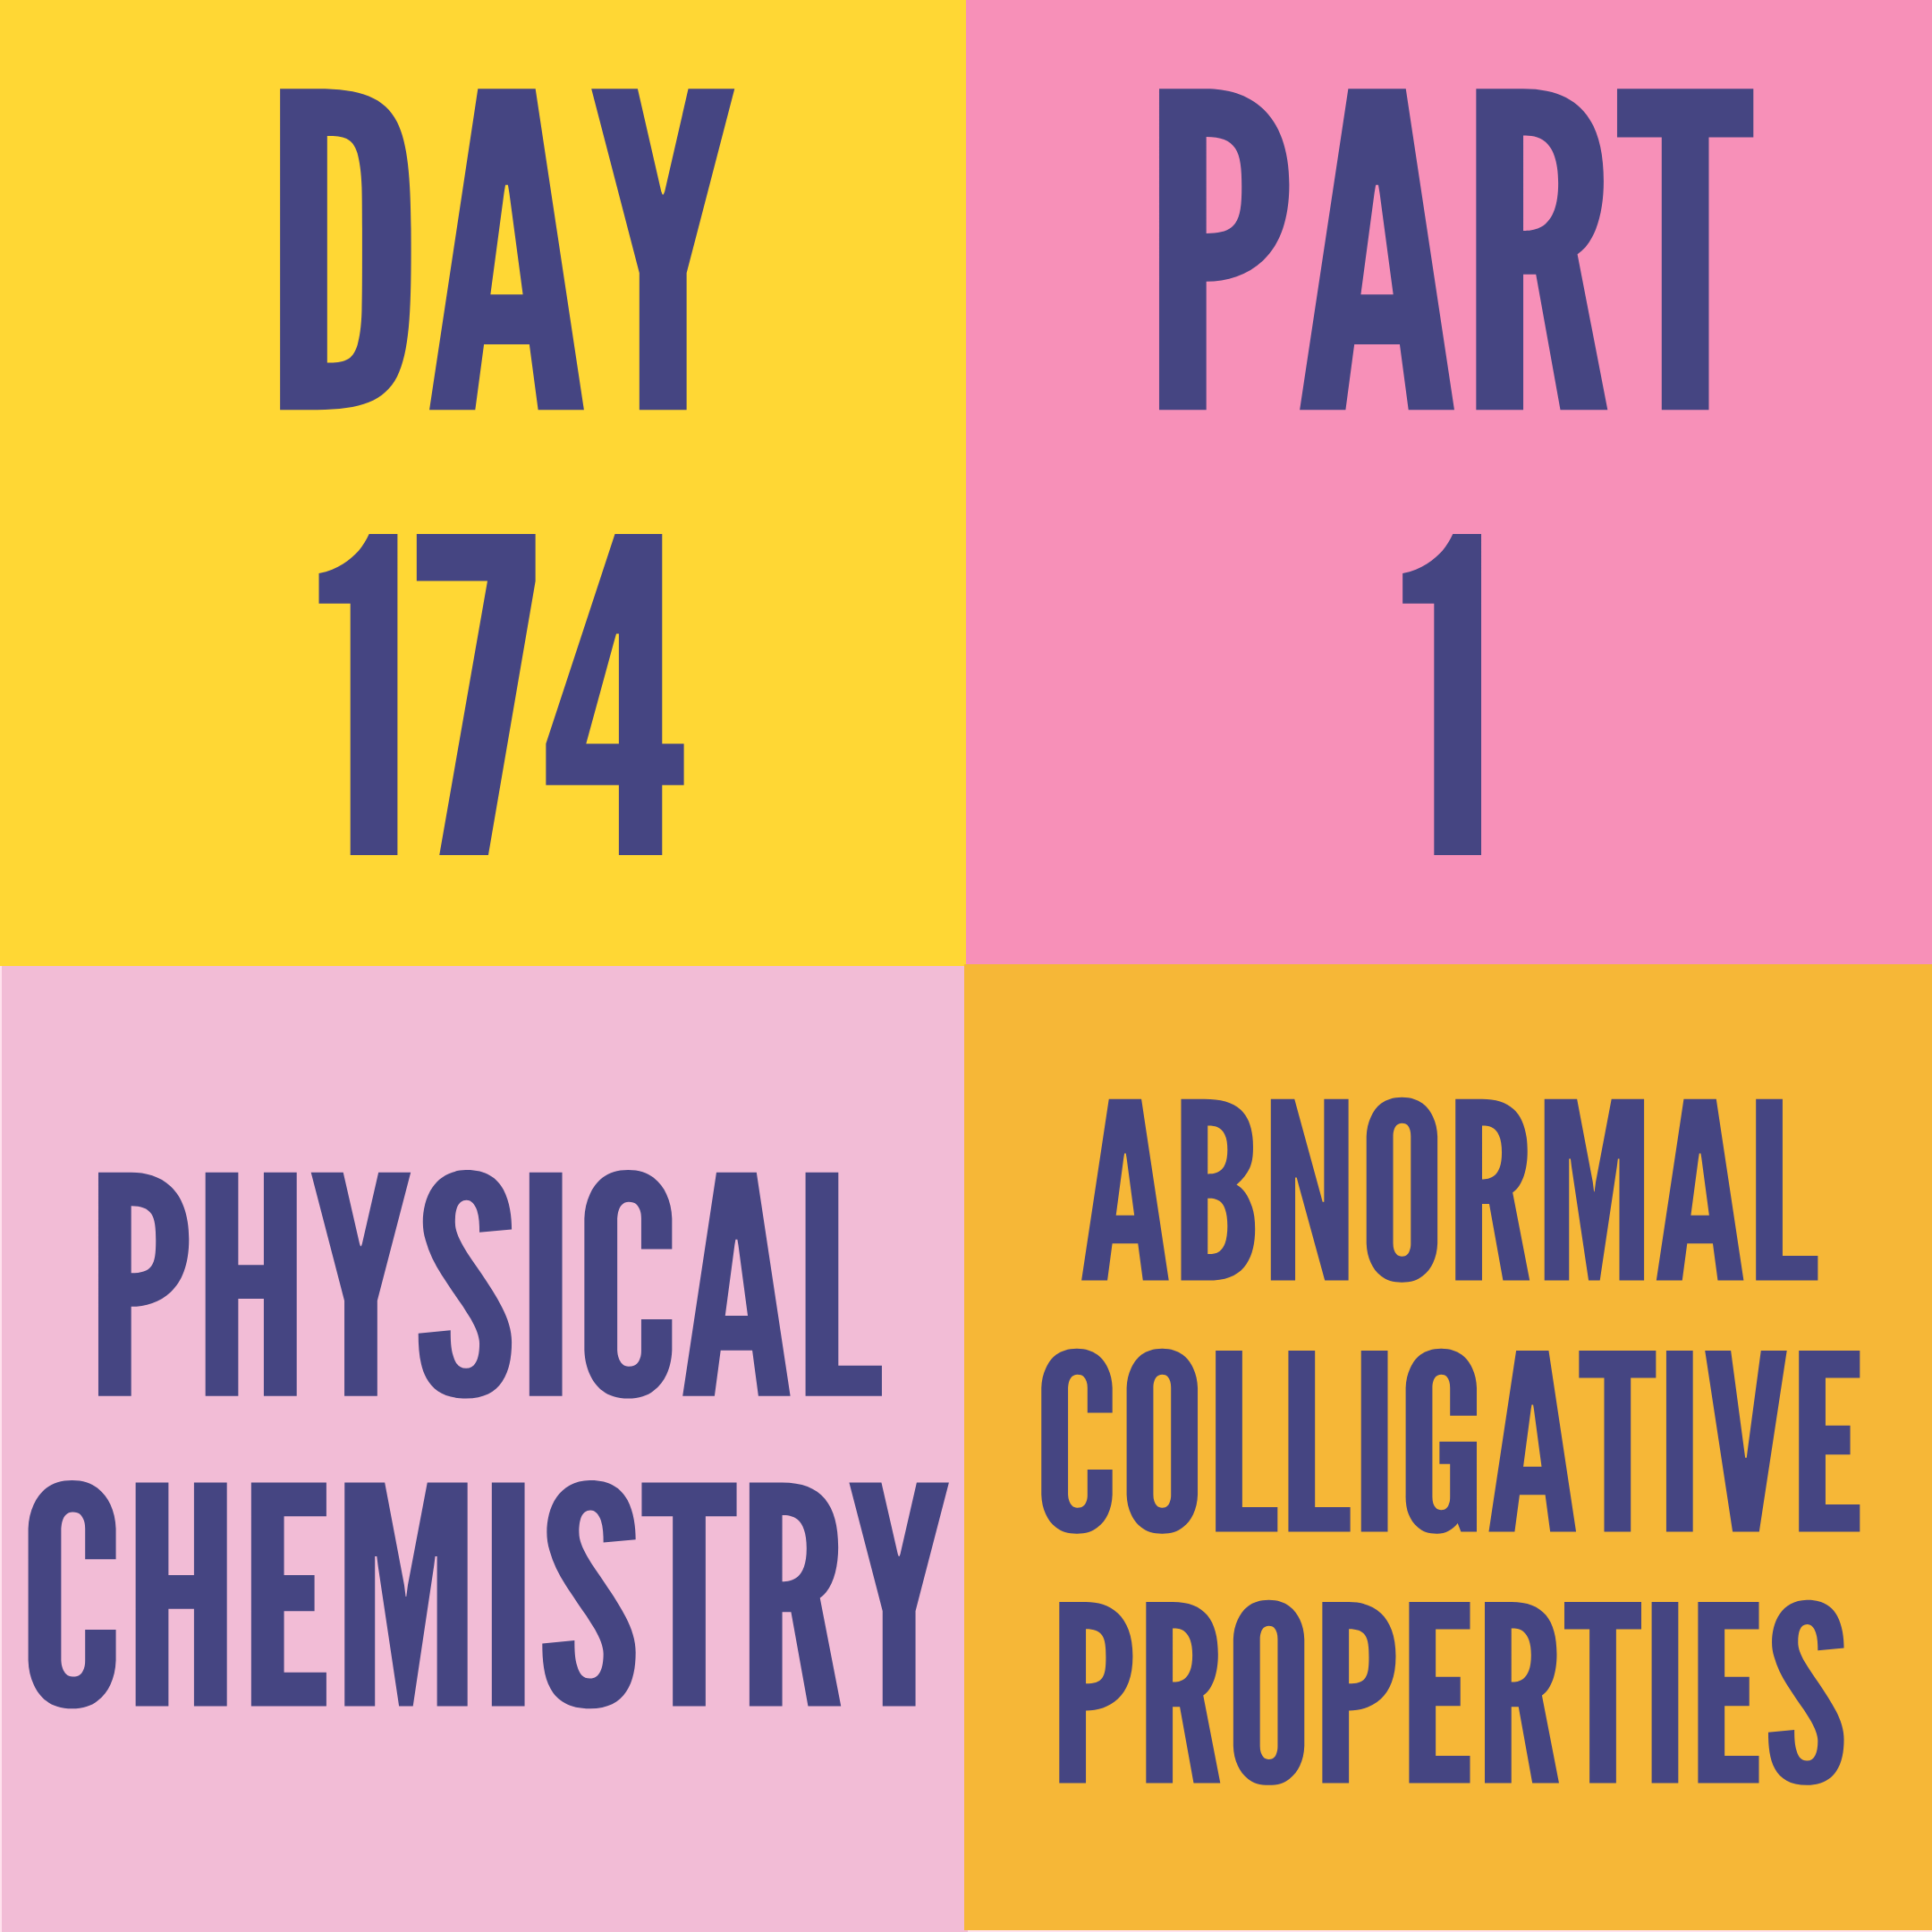 DAY-174 PART-1 ABNORMAL COLLIGATIVE PROPERTIES